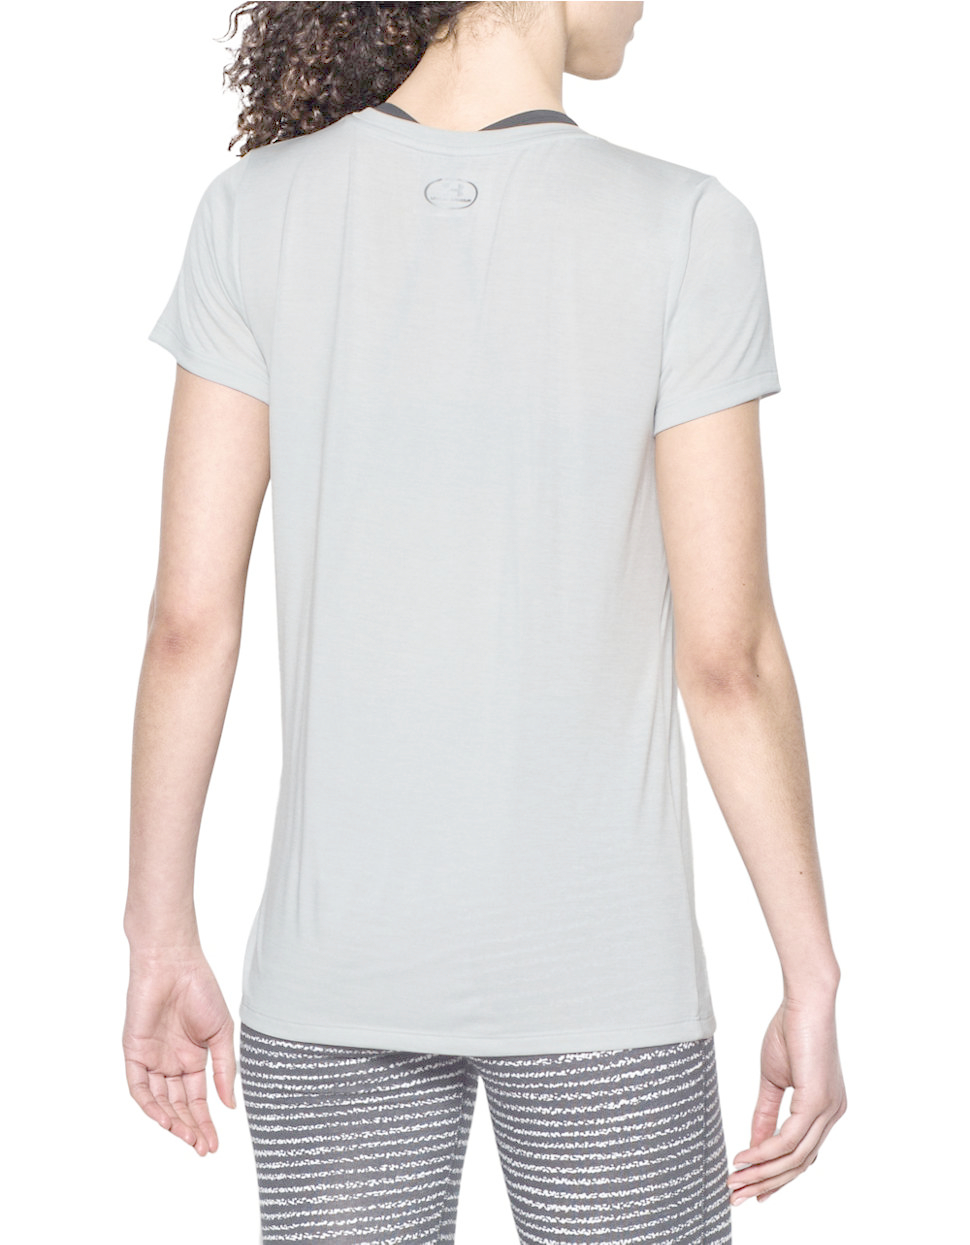 Under armour heather twist t shirt in gray lyst for Gray under armour shirt